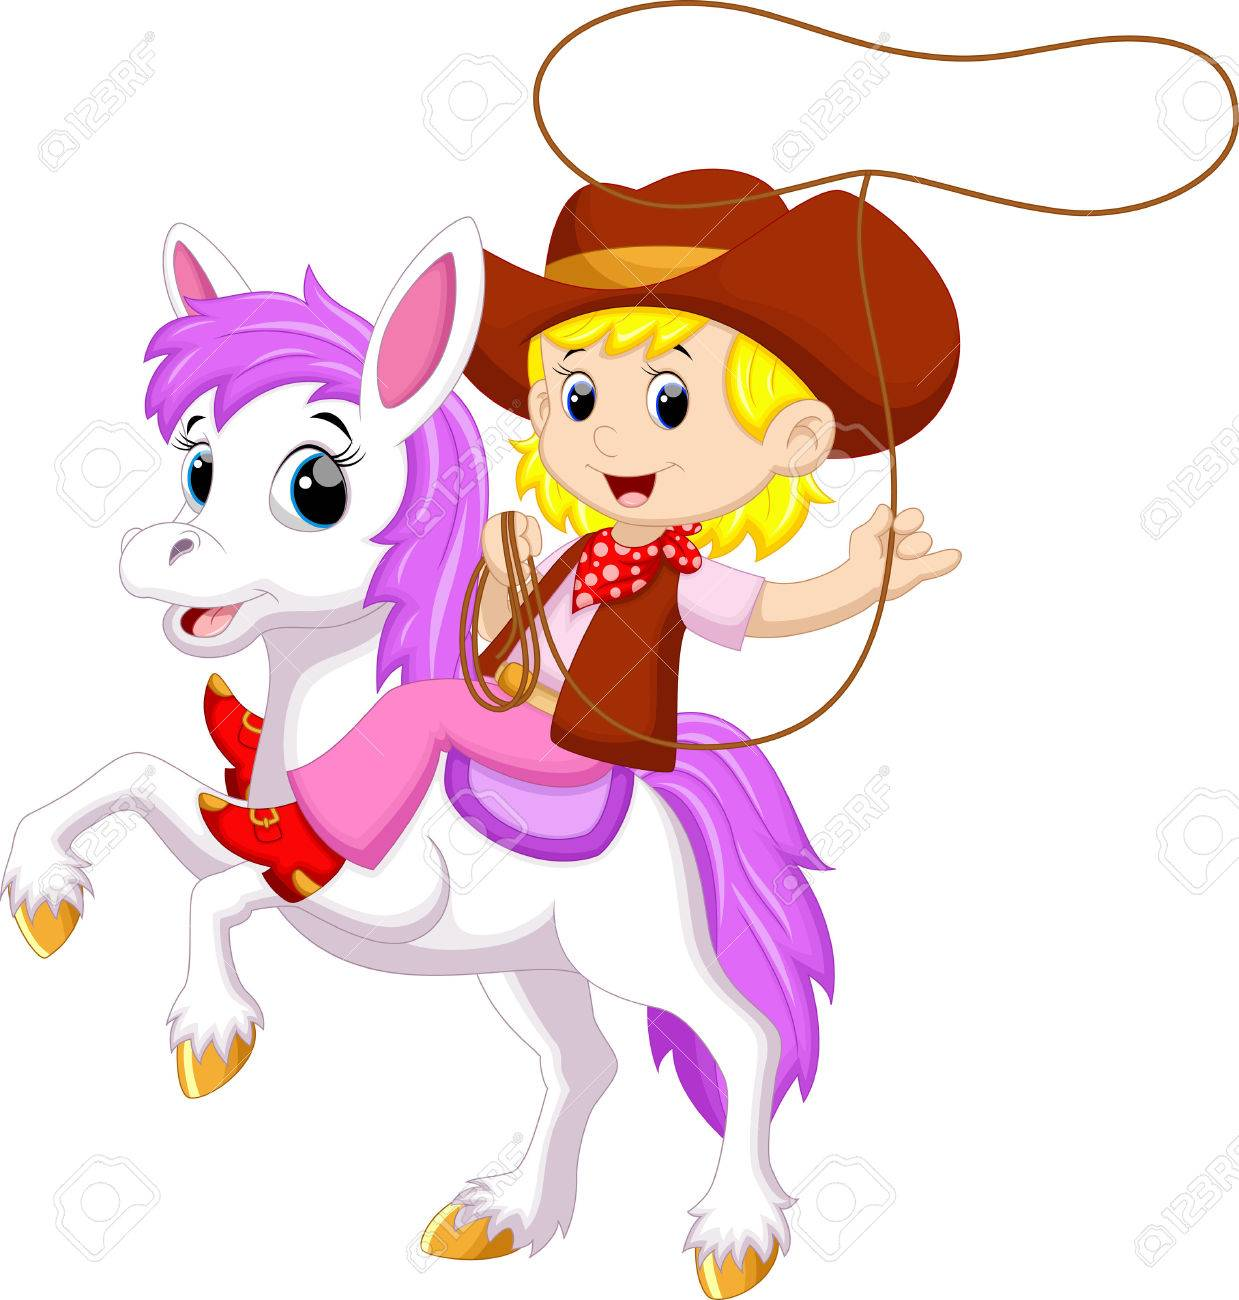 cowgirl riding a horse with lasso royalty free cliparts vectors rh 123rf com Farm Cartoon Character Outfit Little Cowgirl Cartoon Clip Art